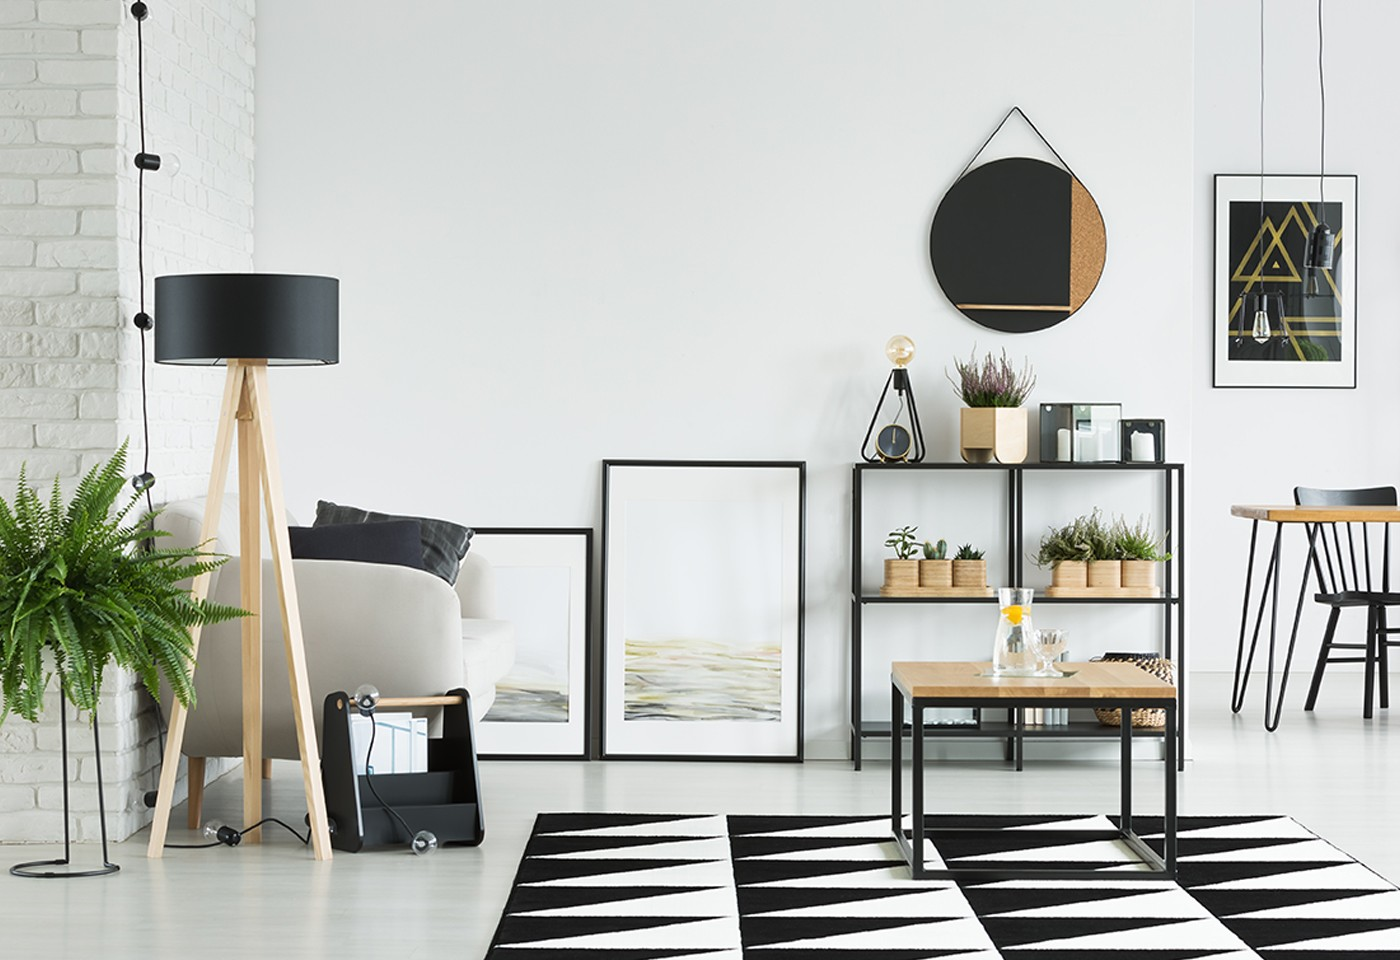 Idee arredamento casa low cost stile industriale e stile for Arredamento scandinavo on line